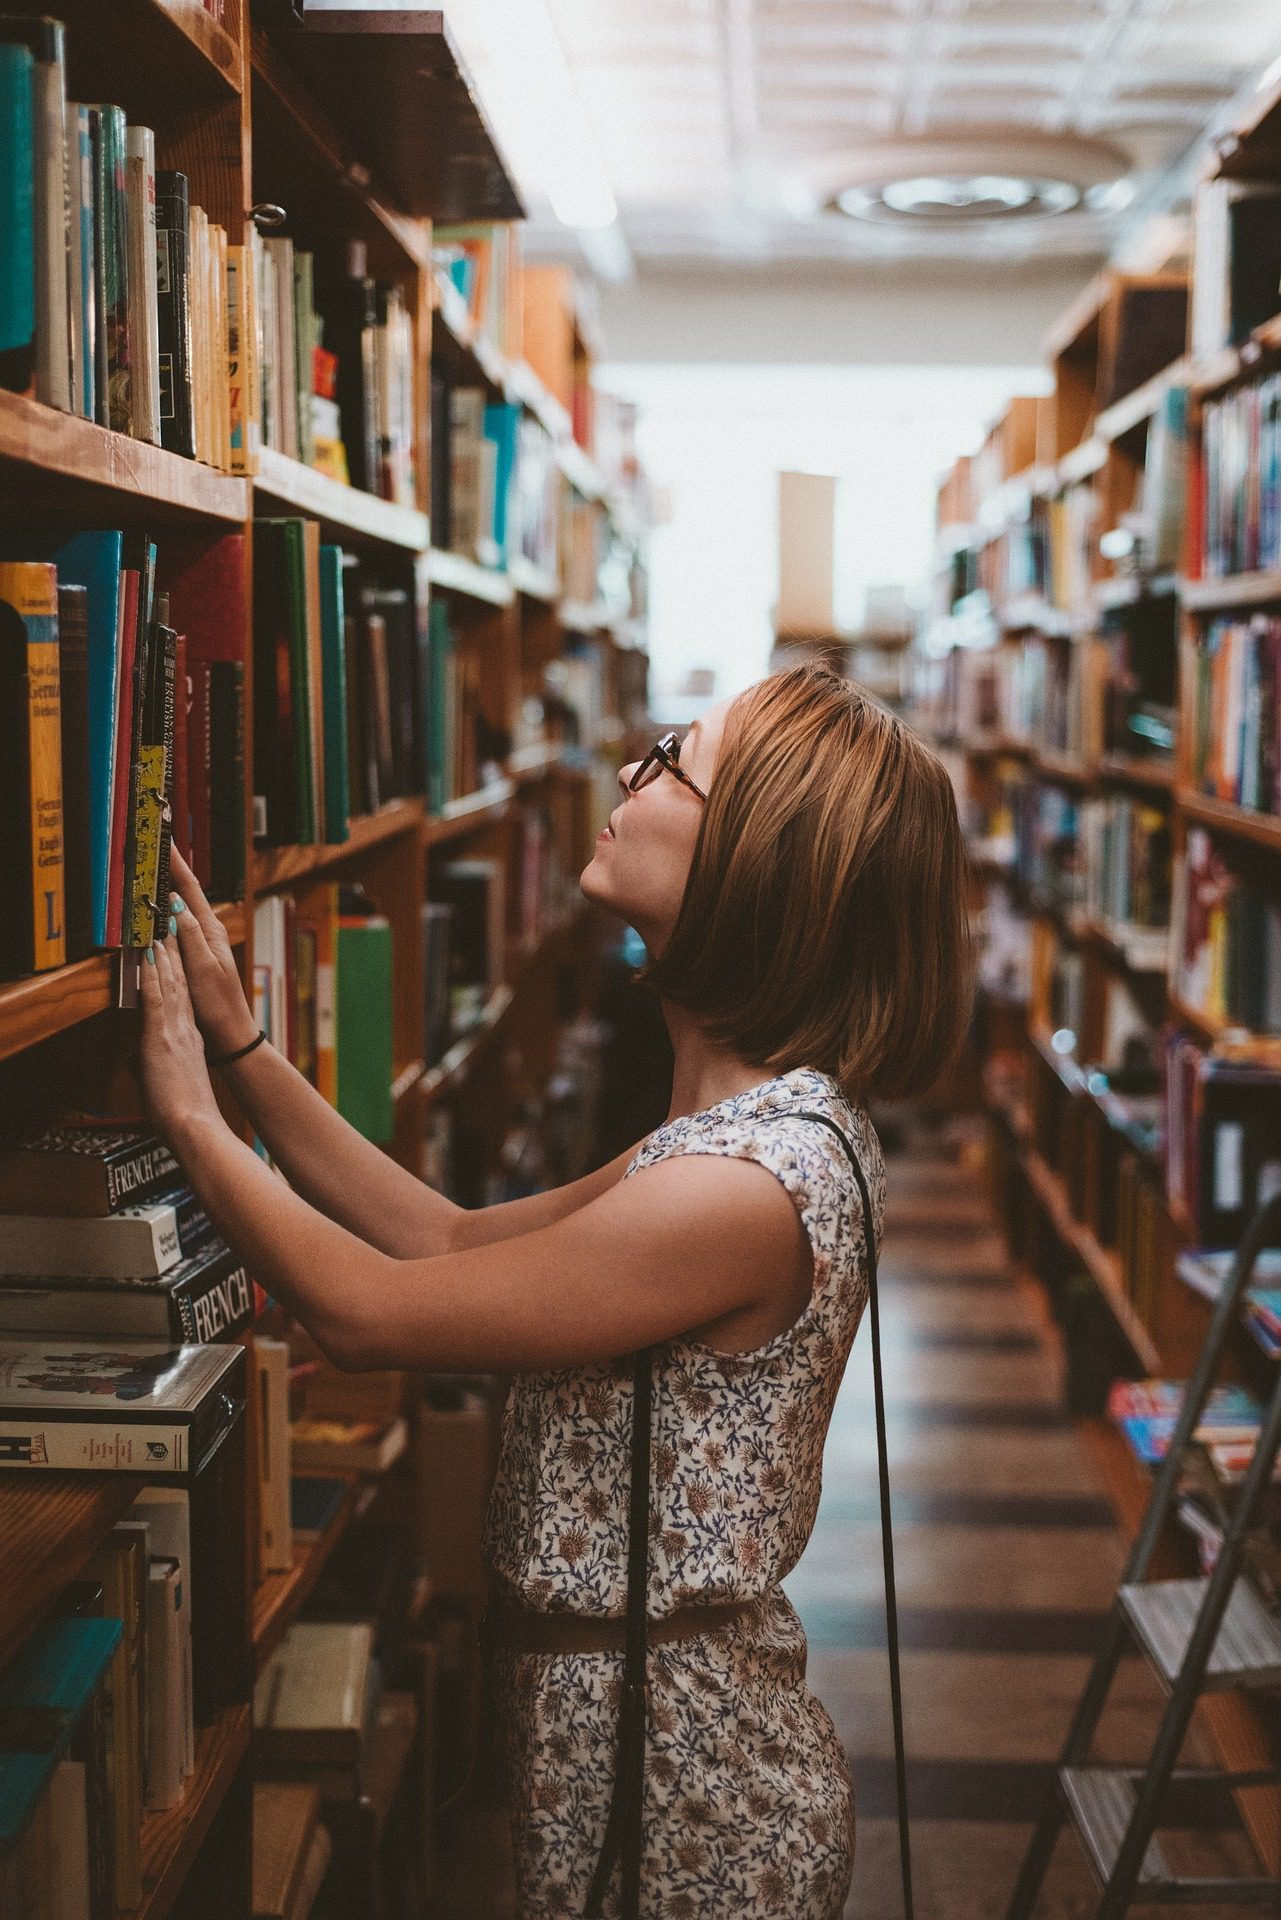 Tips for Selecting A Good Book for Your Course